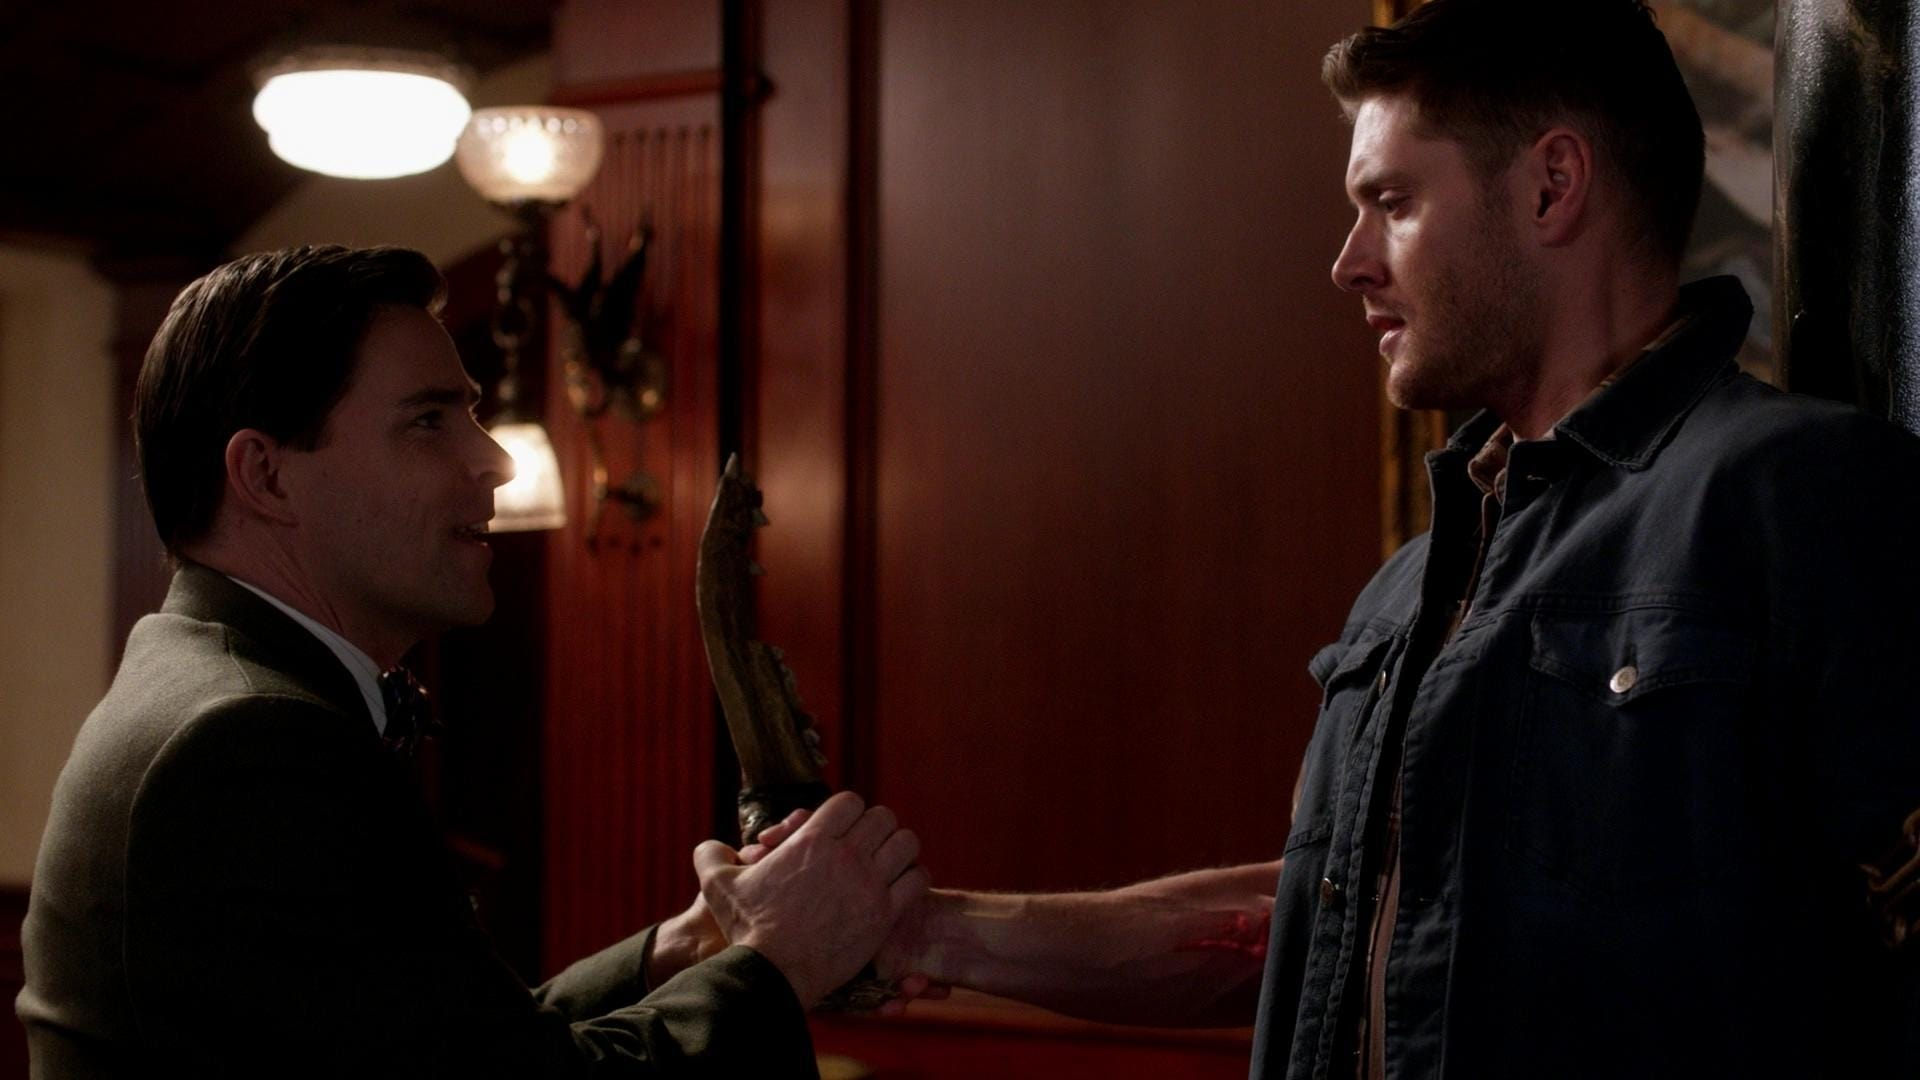 Supernatural - Season 9 Episode 16 : Blade Runners